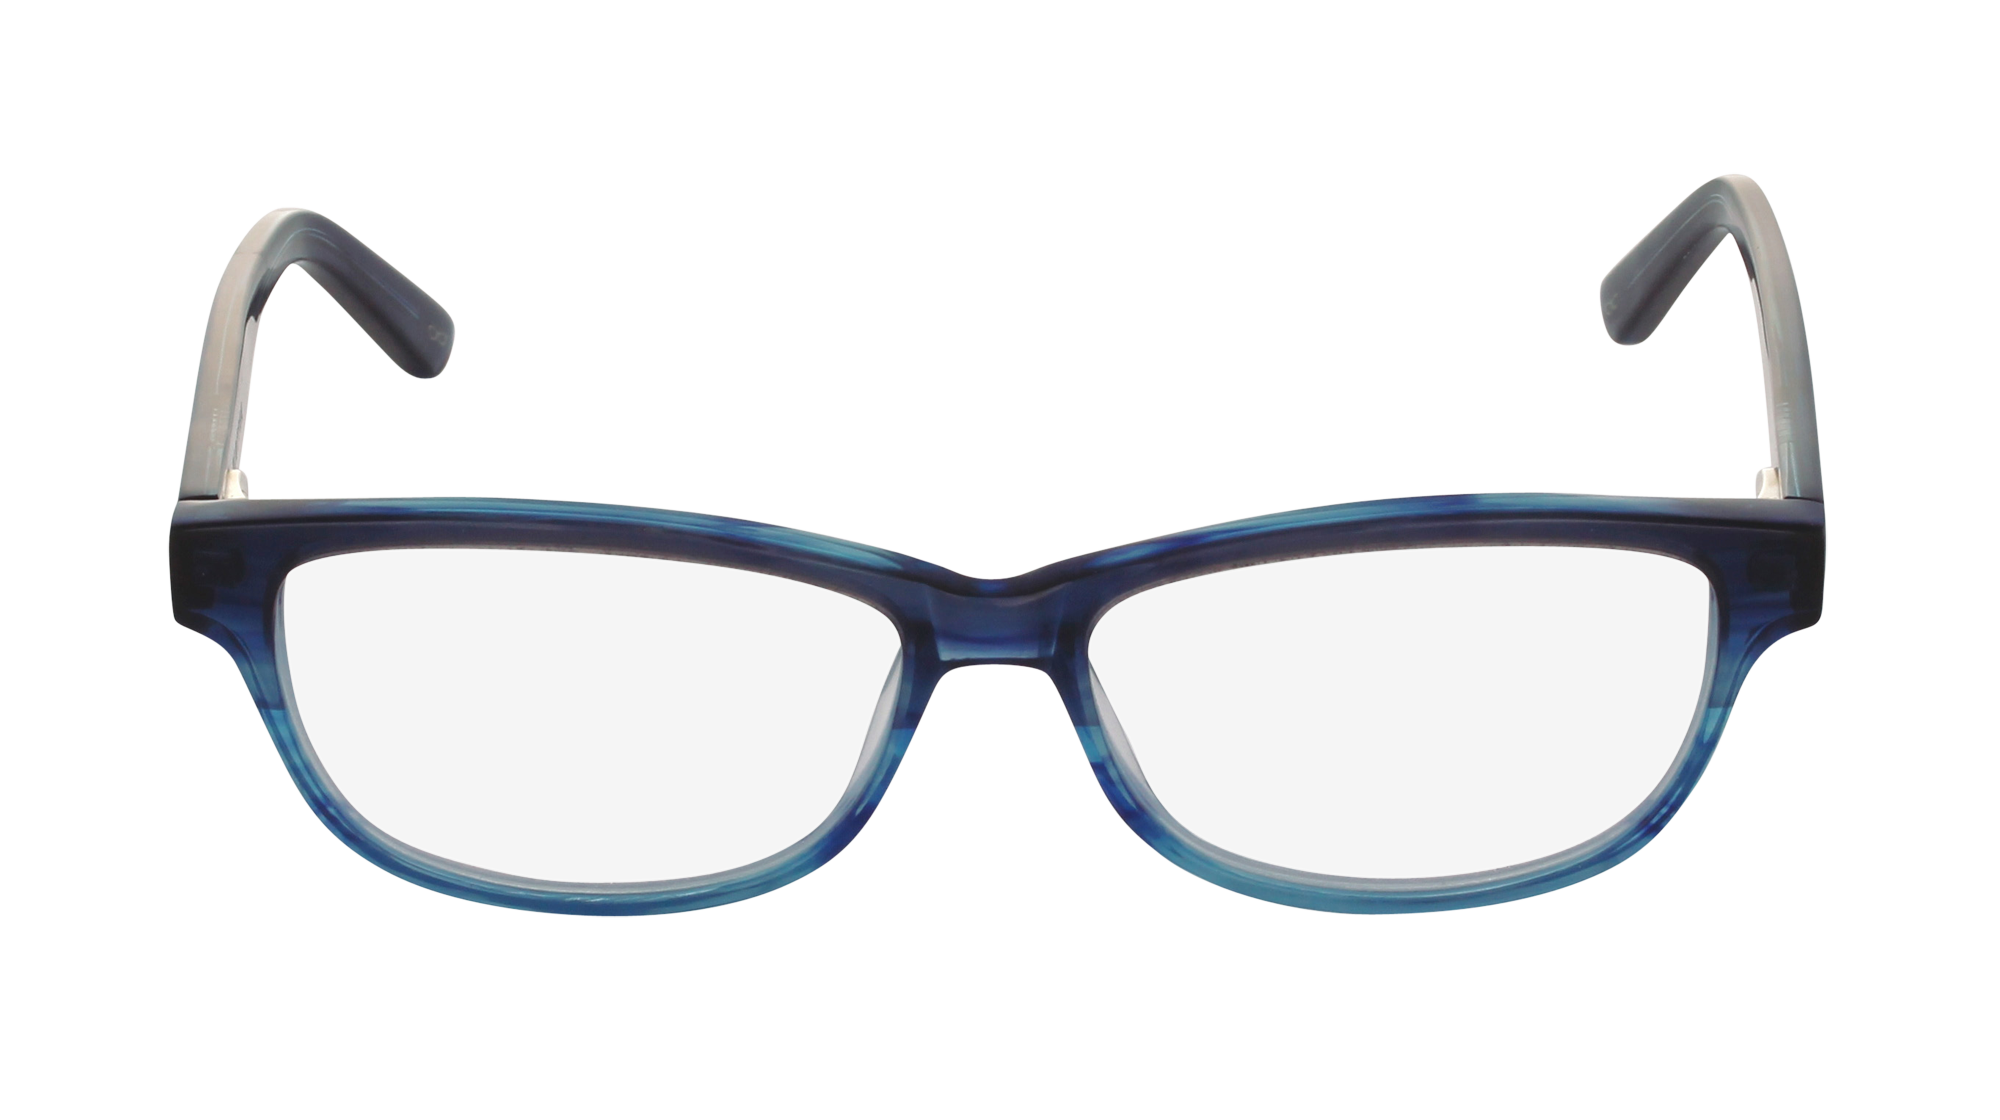 Sunglasses Frames PNG HD - Glasses HD PNG